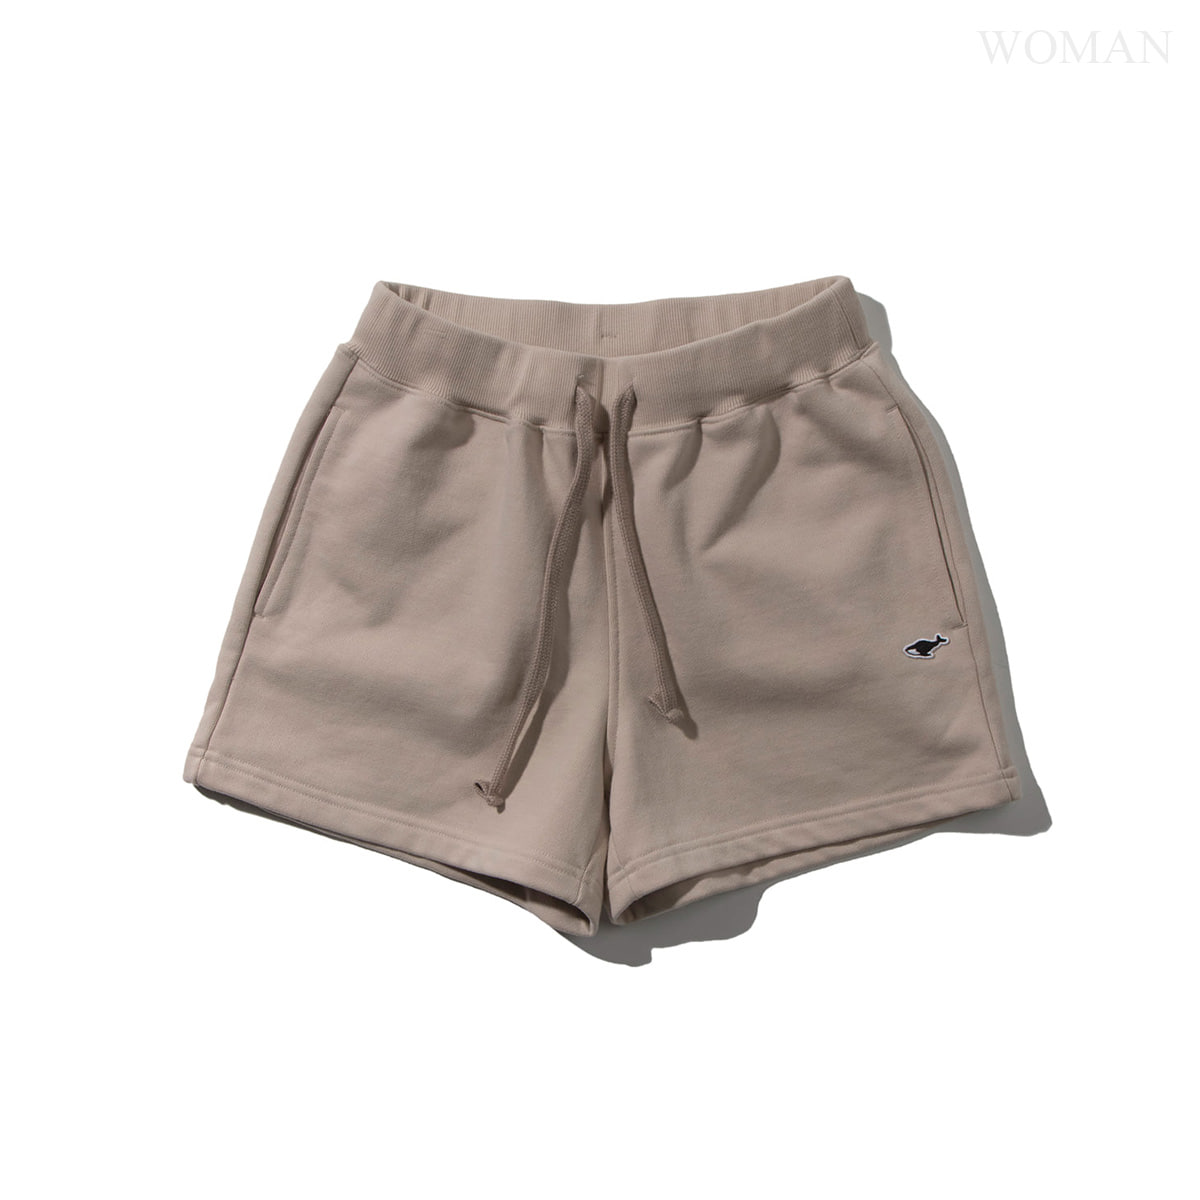 [NEITHERS] 356A-1 SWEAT SHORTS 'BEIGE'